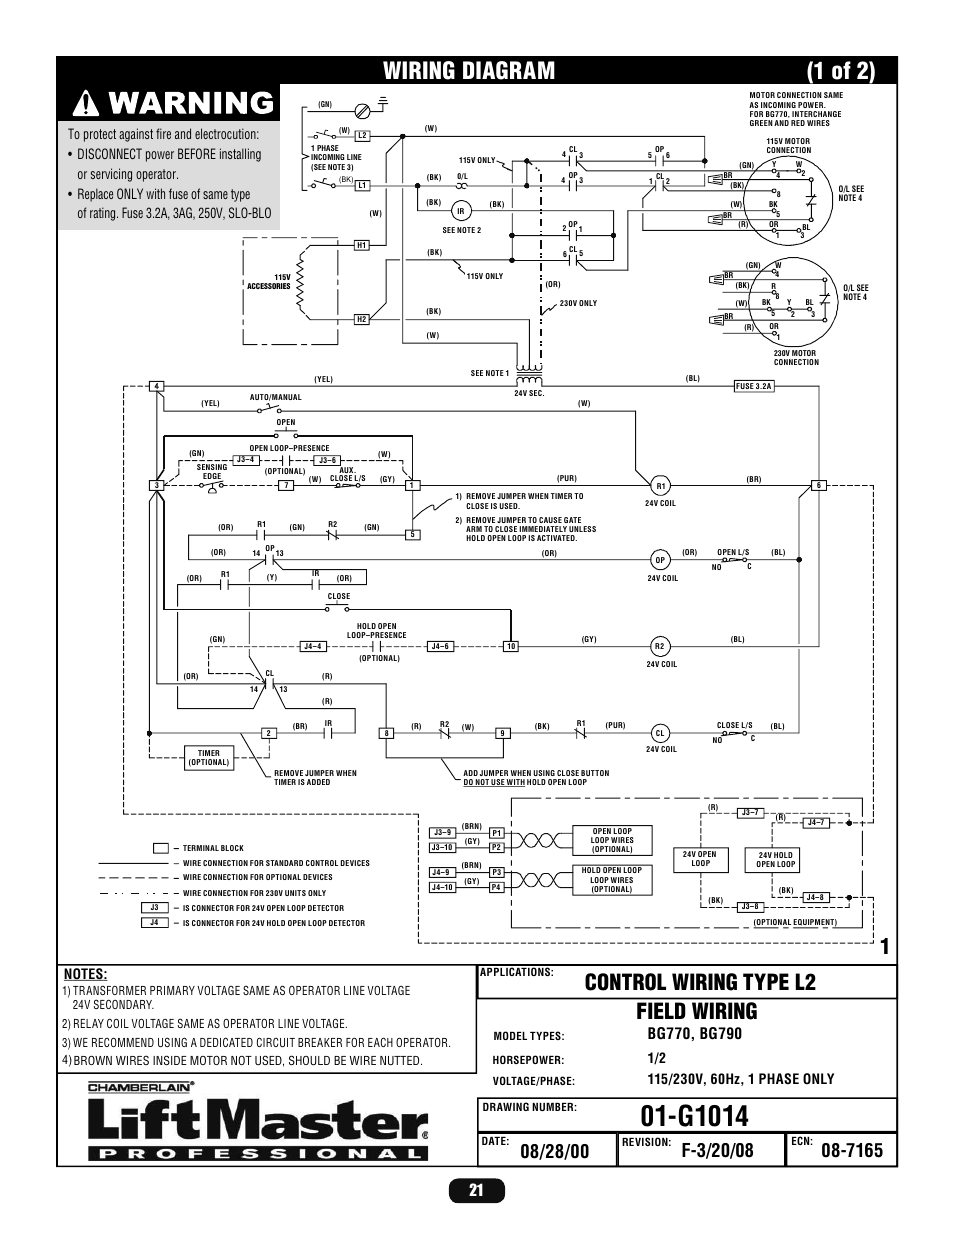 wiring diagram g1014 1 of 2 liftmaster bg770 industrial duty rh manualsdir com